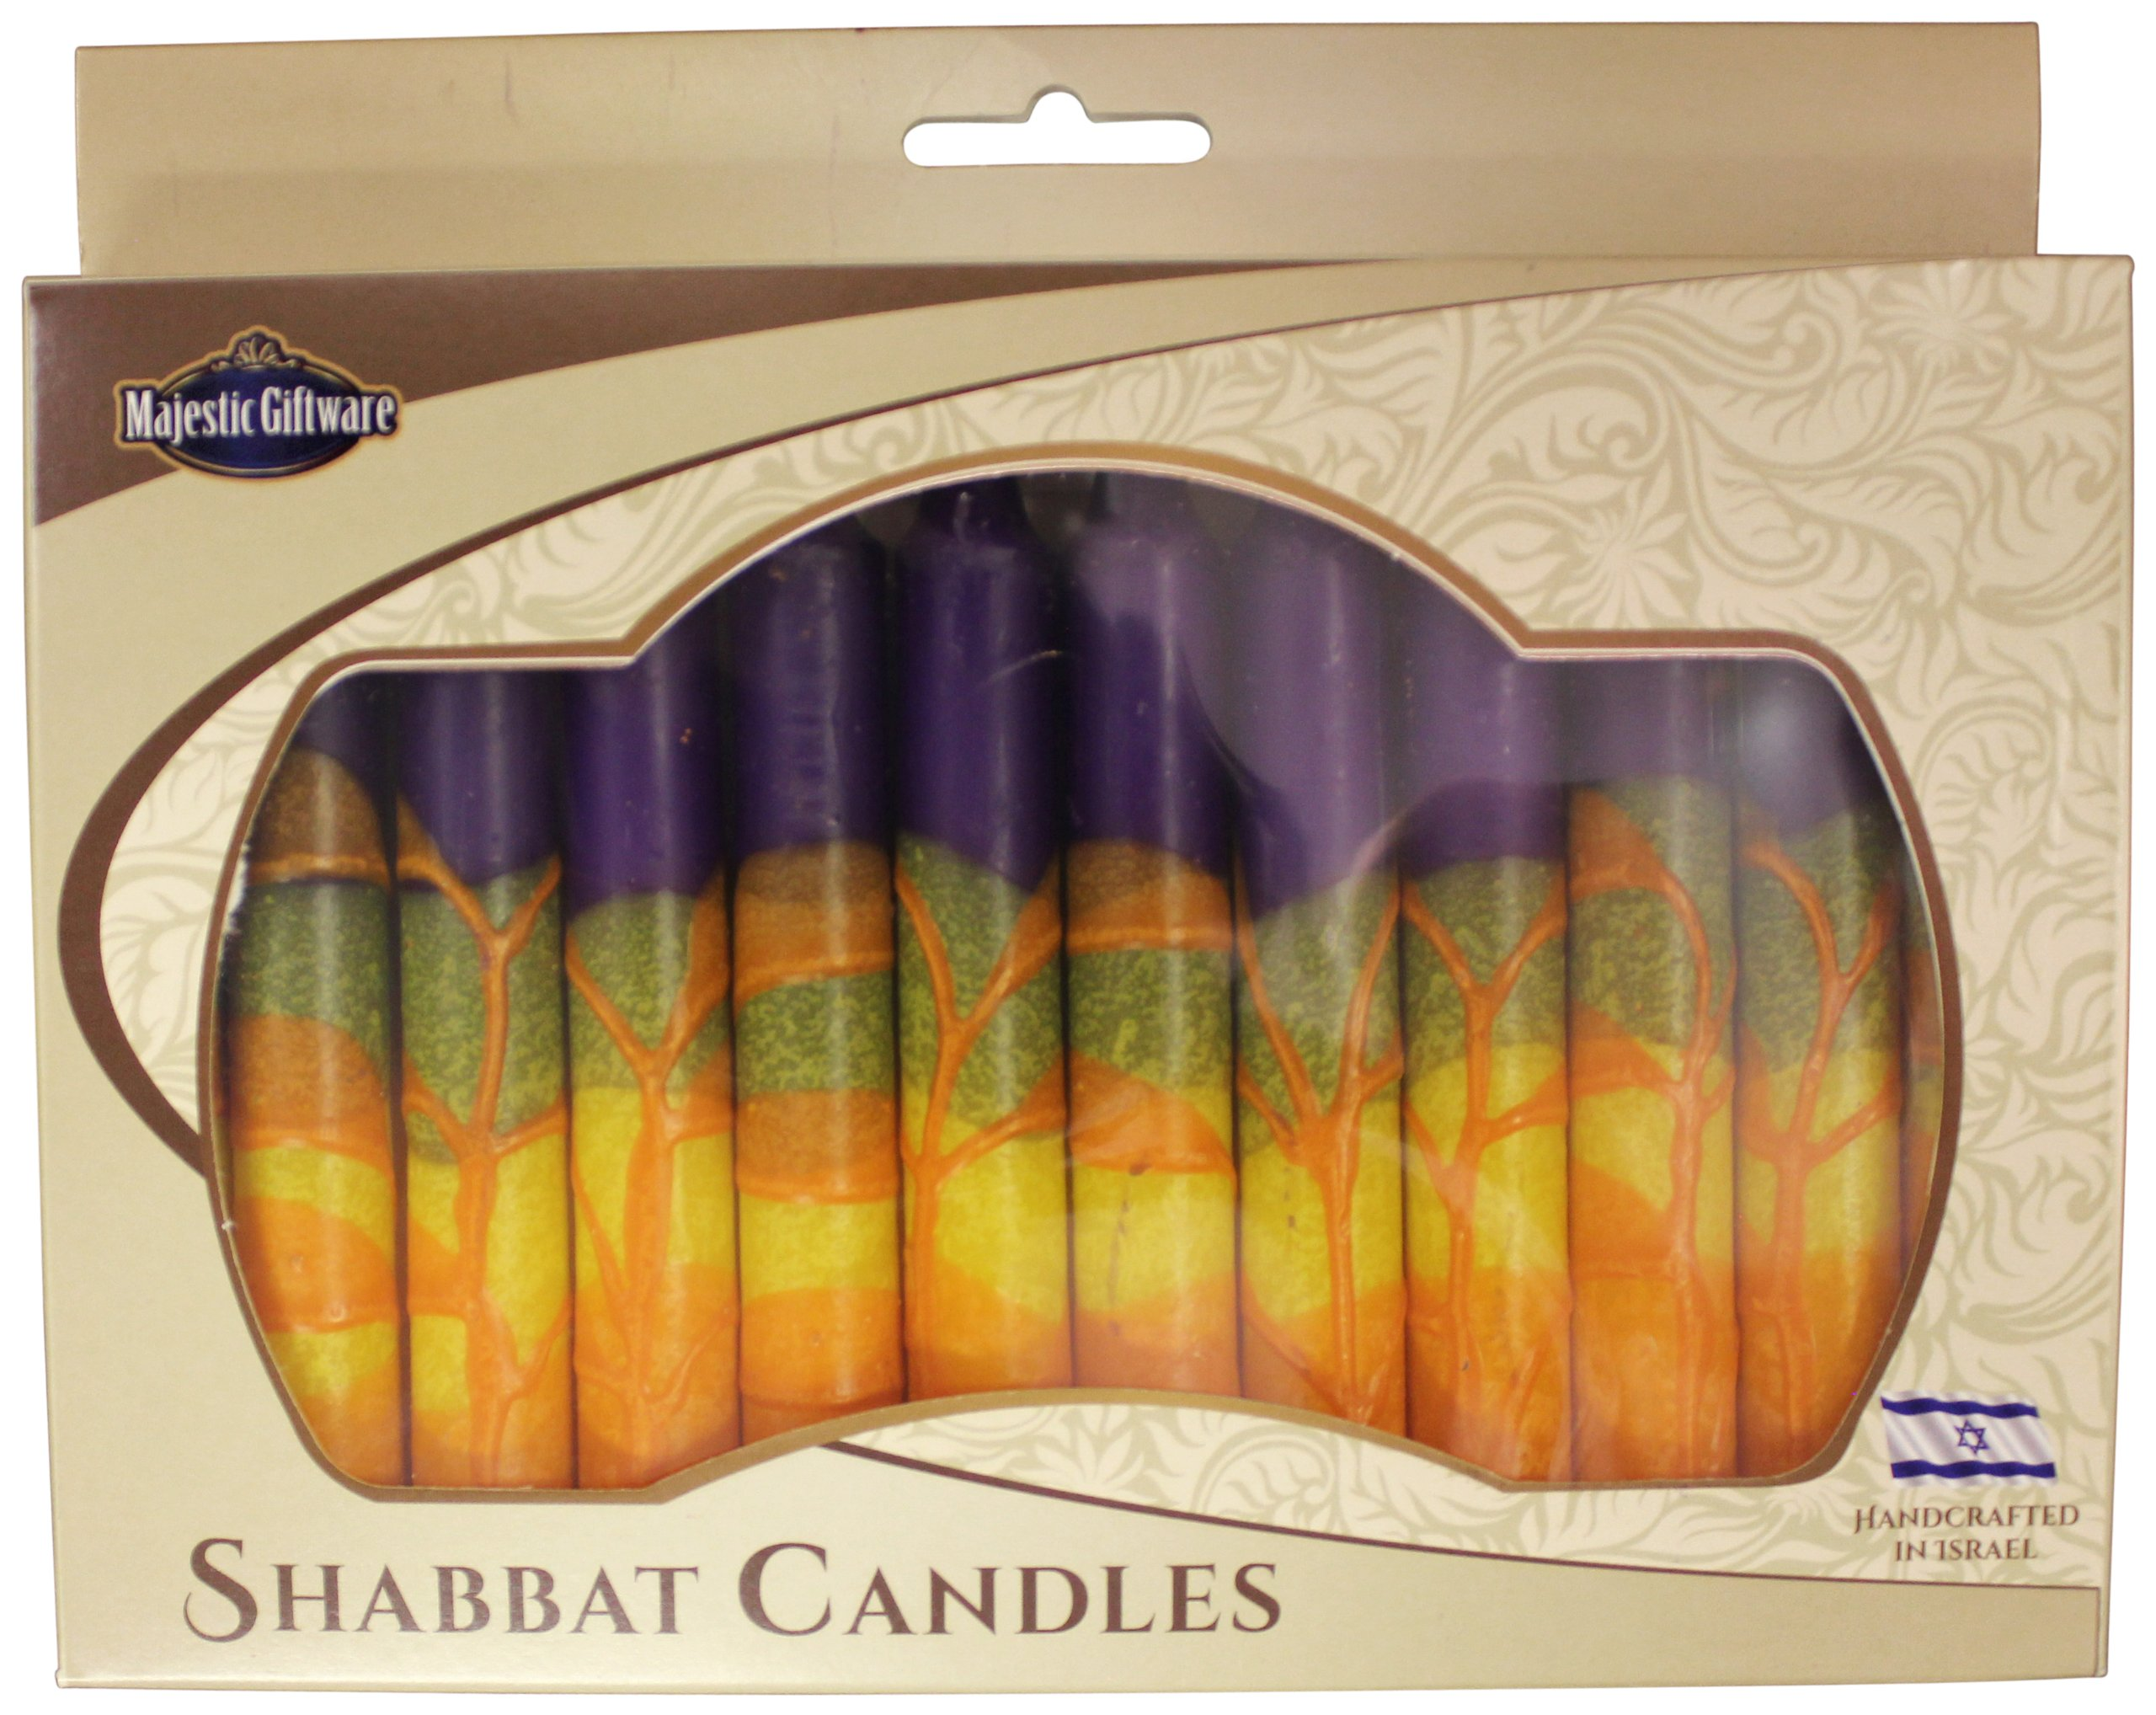 Majestic Giftware SC-SHHR-P Safed Shabbat Candle, 5-Inch, Harmony Purple, 12-Pack